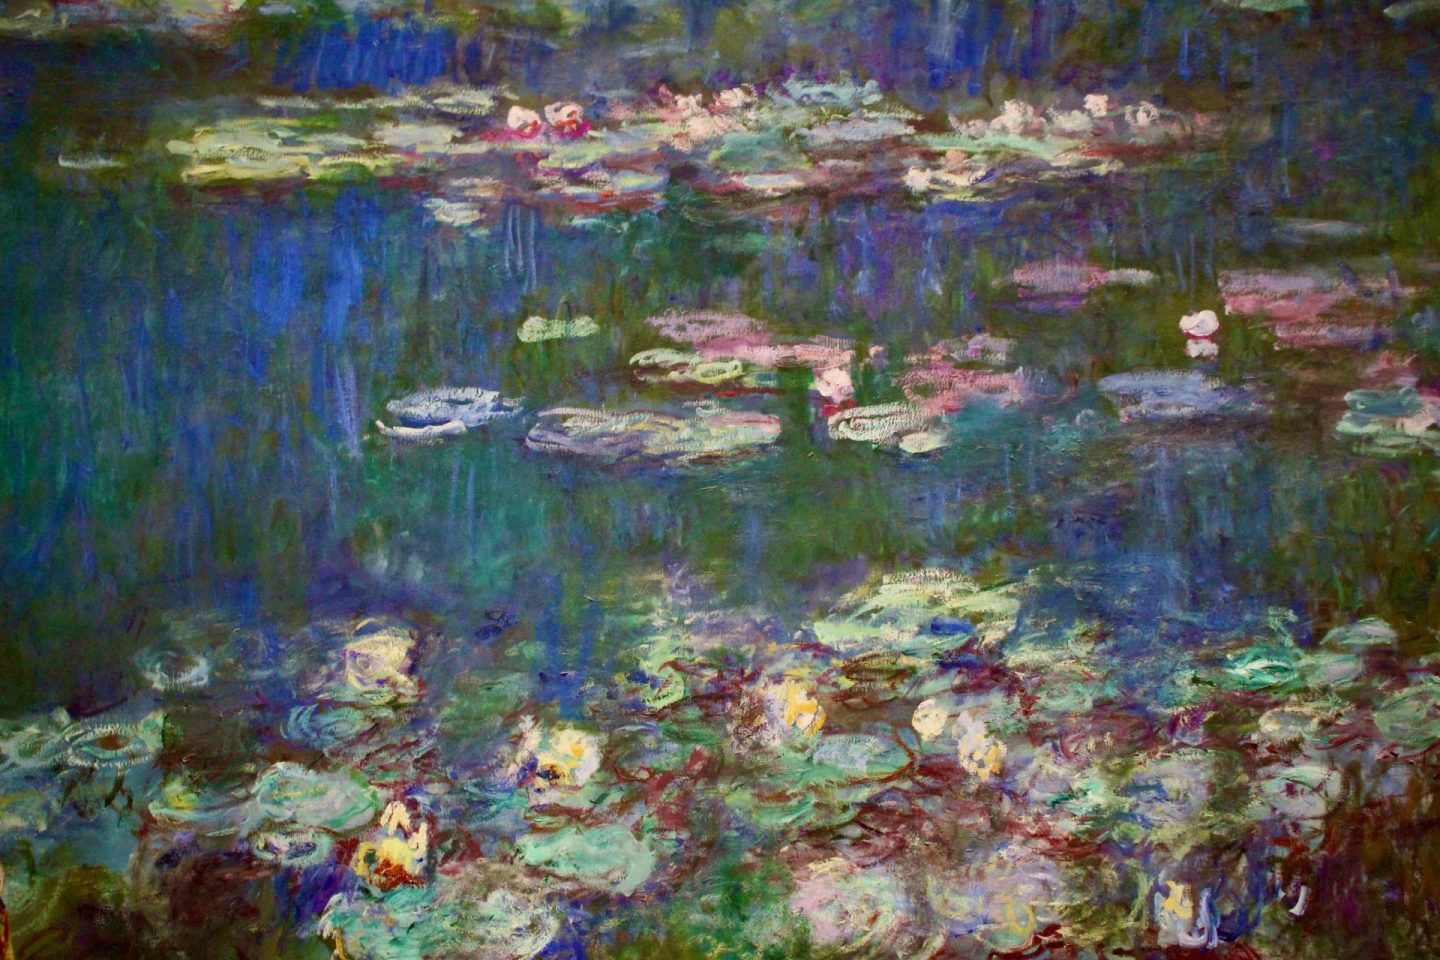 Musee de L'Orangerie Monet's Water Lilies | Paris Travel Guide | The Spectacular Adventurer